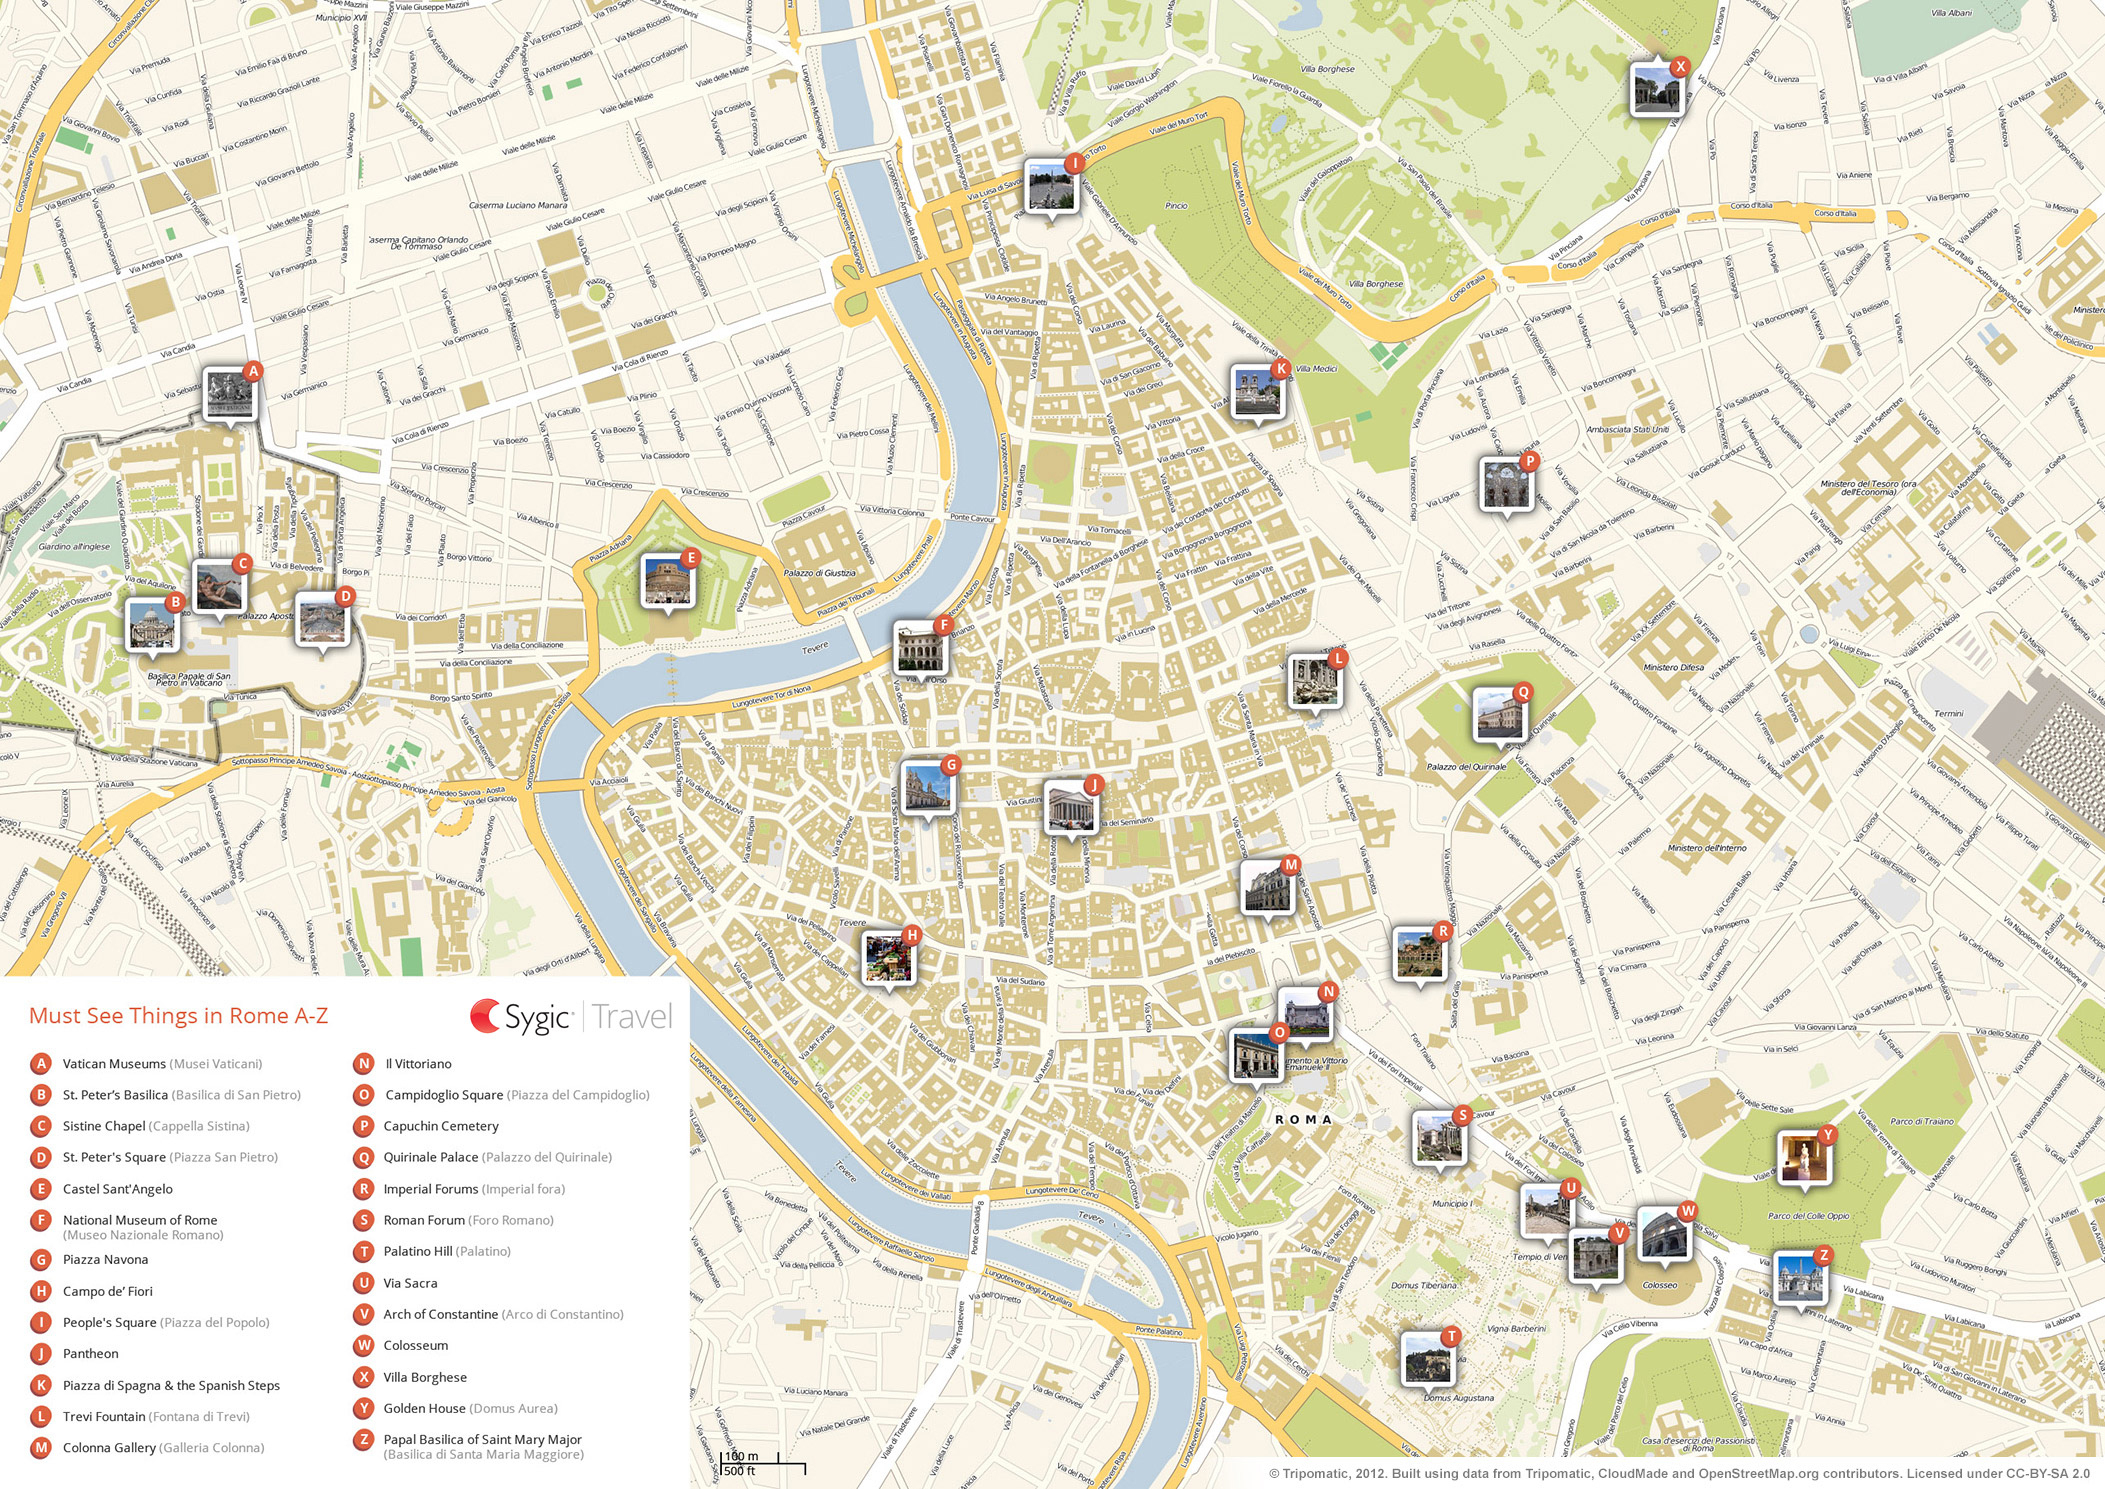 Rome Printable Tourist Map | Sygic Travel - Printable Map Of Rome Tourist Attractions